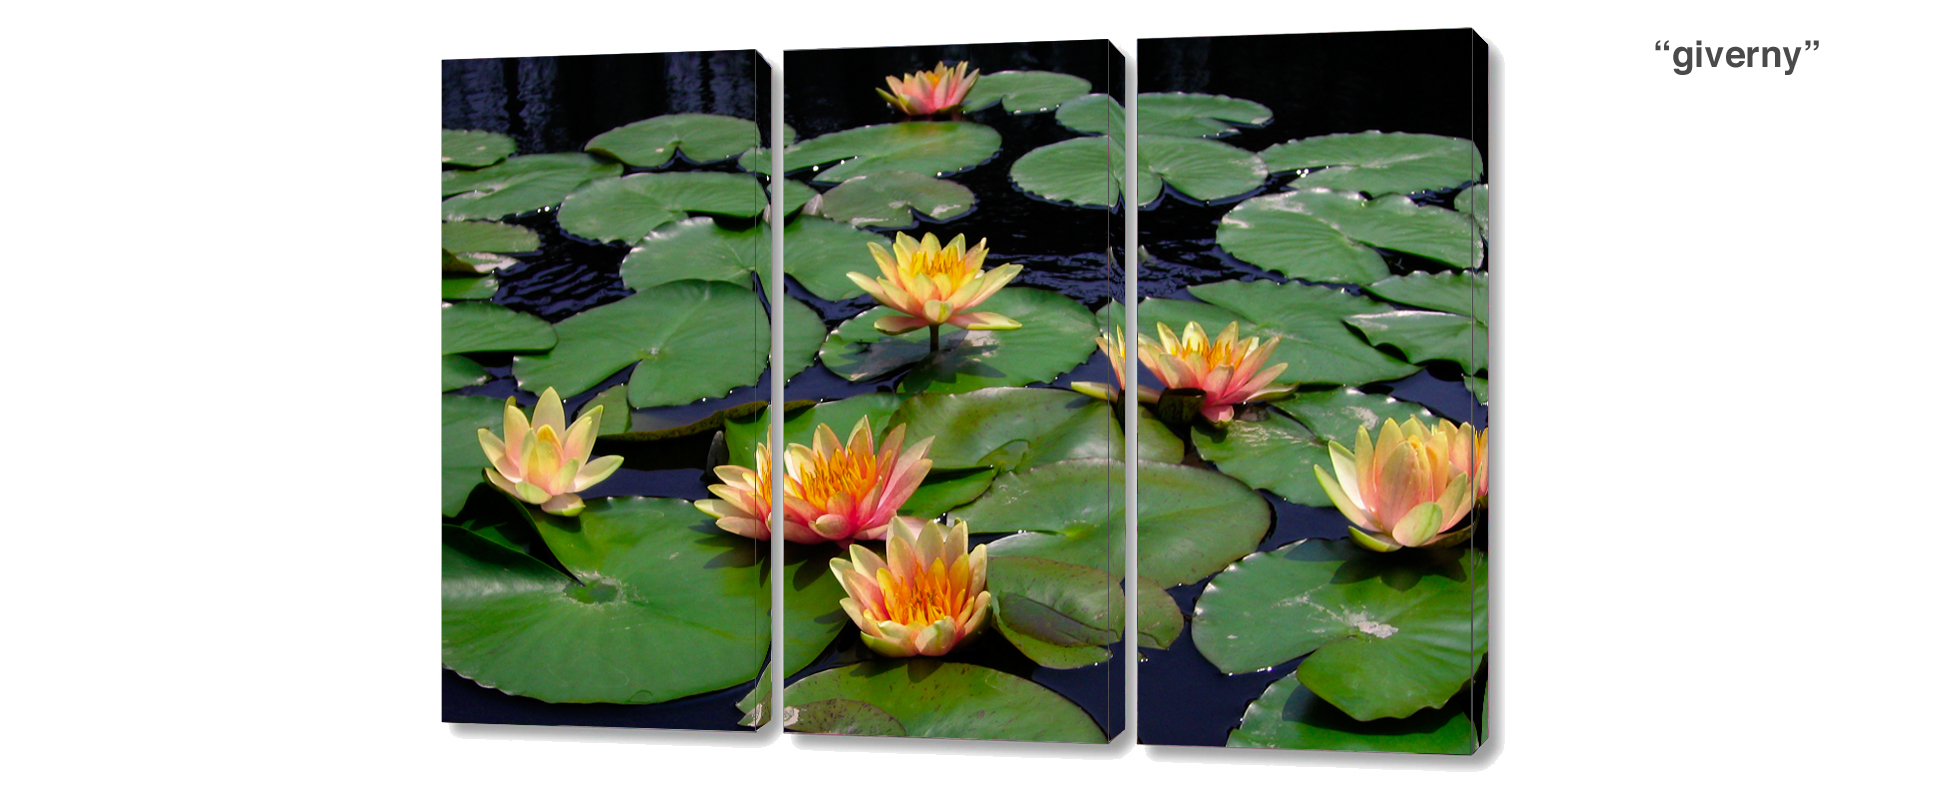 triptych water lily pond - 3 Piece limited edition giclee canvas floral wall decor